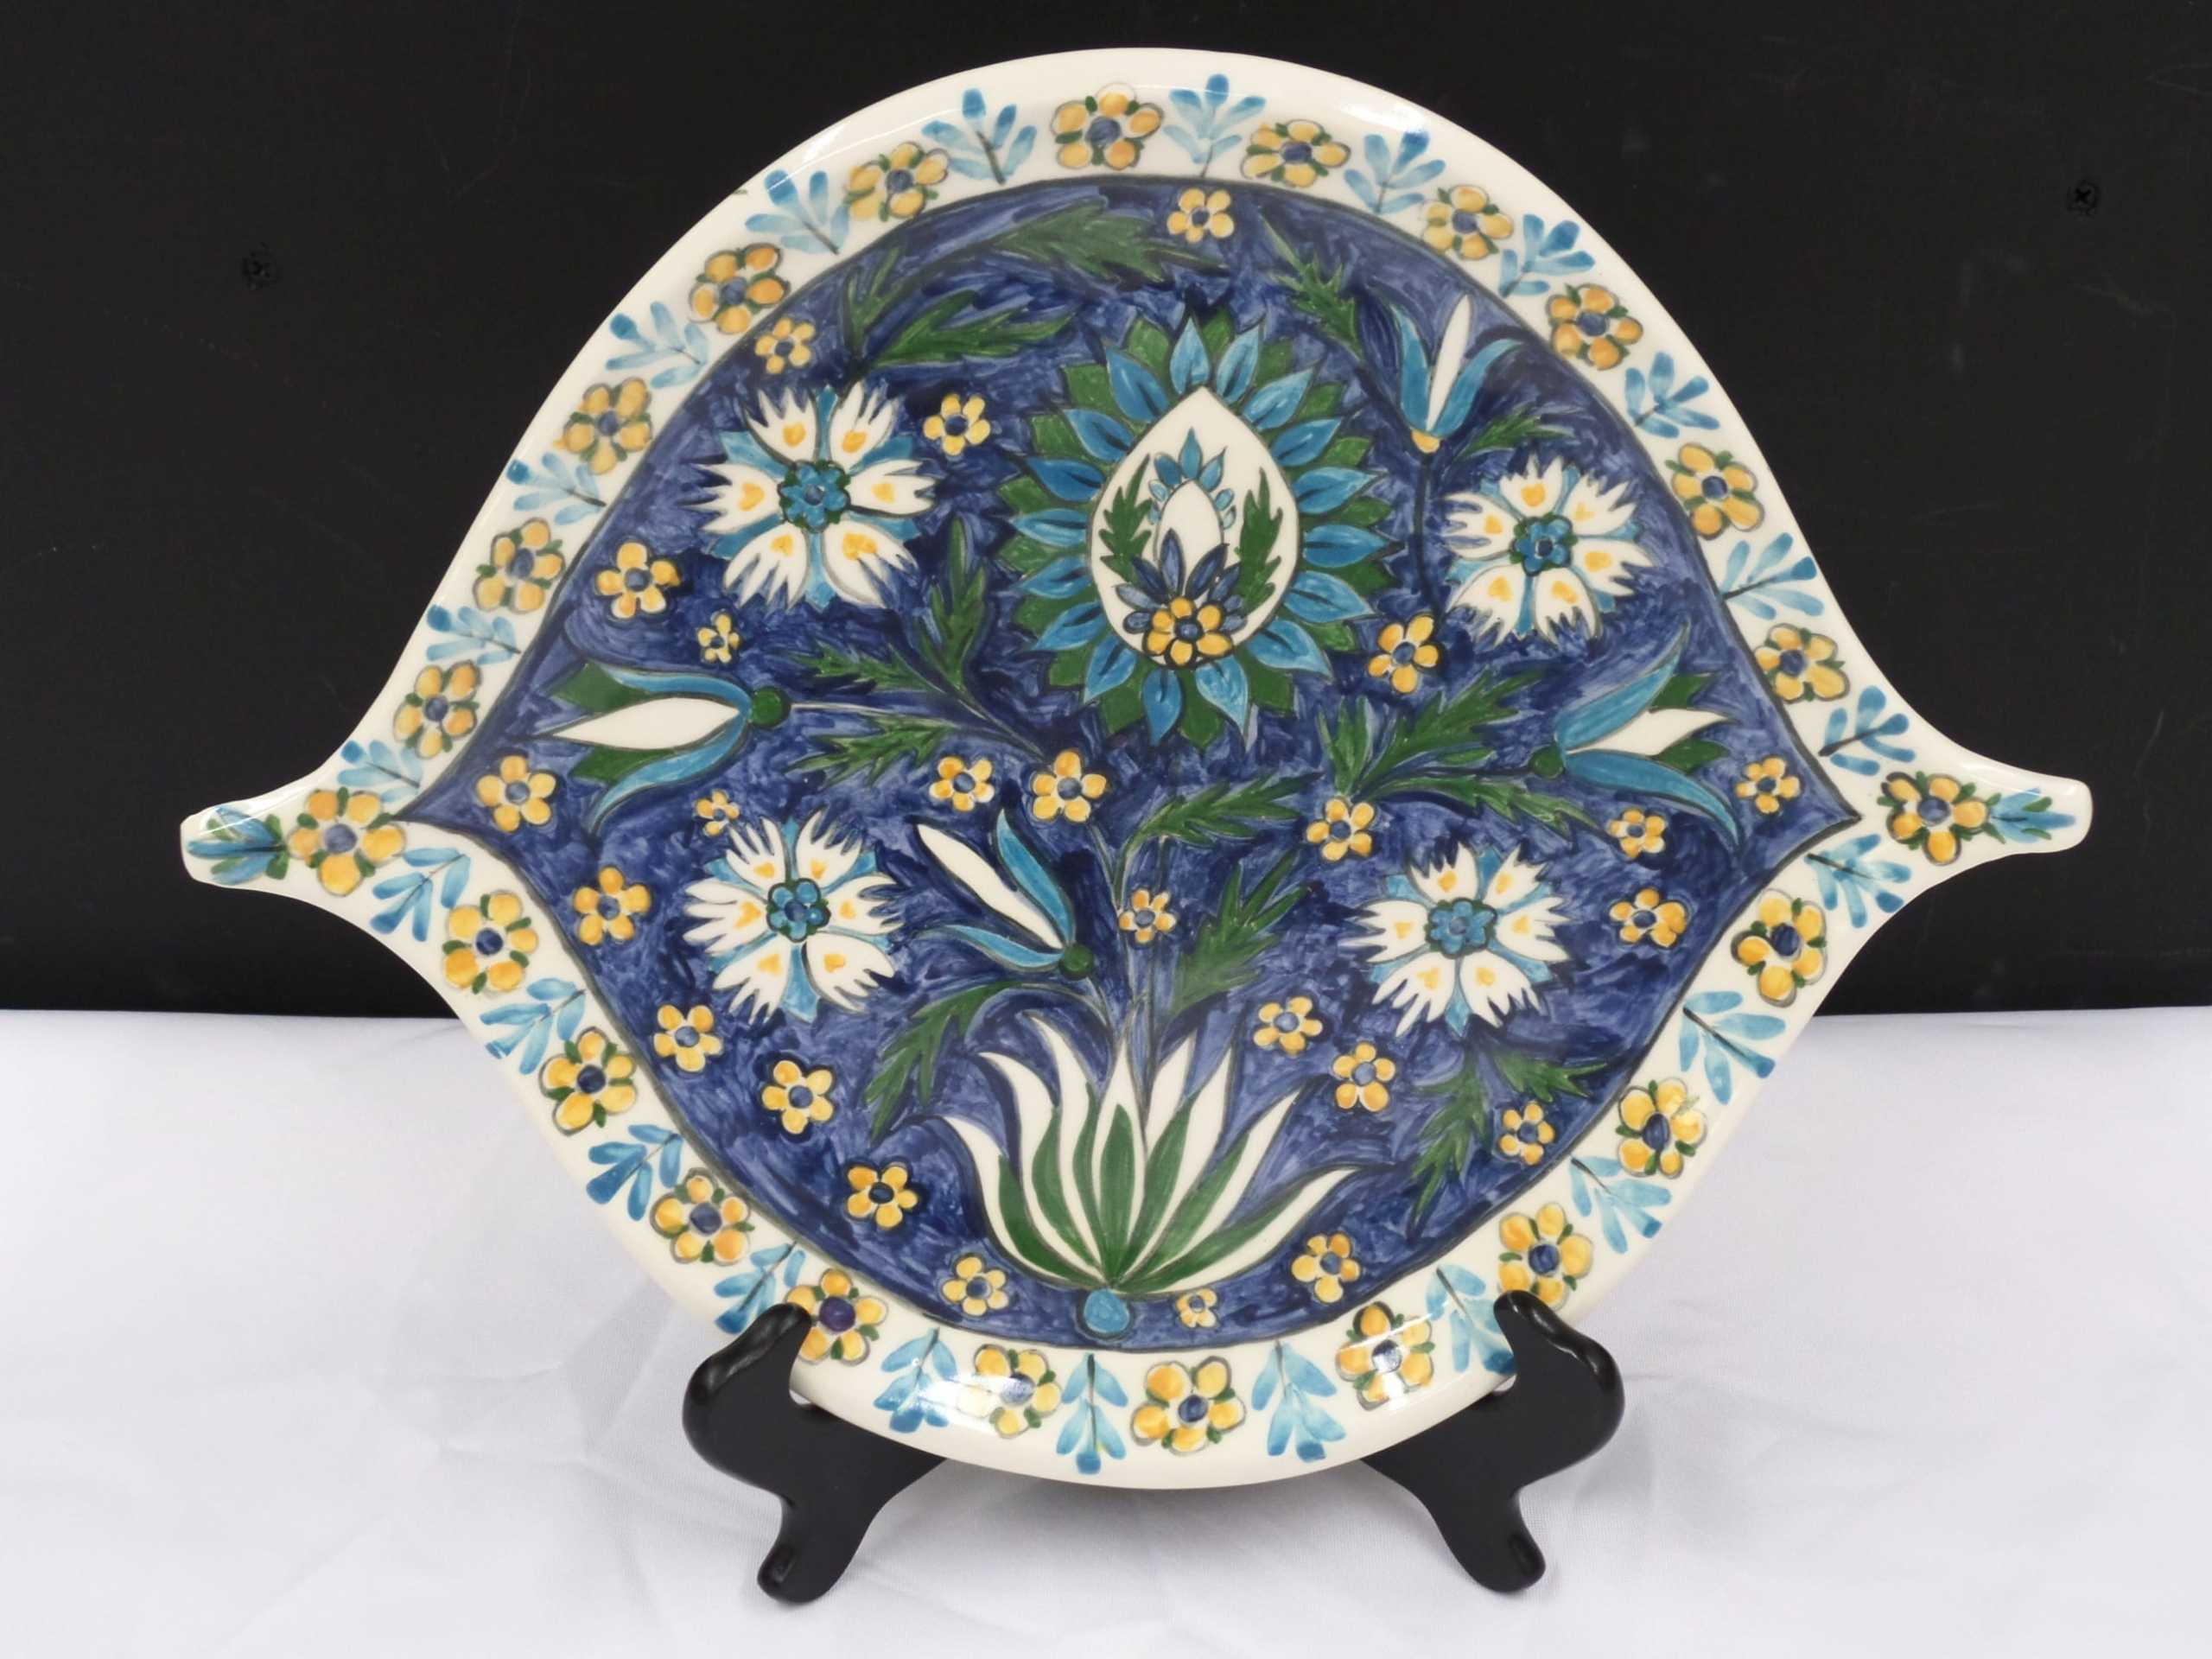 """11"""" FLORAL CERAMIC PLATE <br/> Donated by: ARTIST URSULA MICKLE <br/> Valued at: $80"""